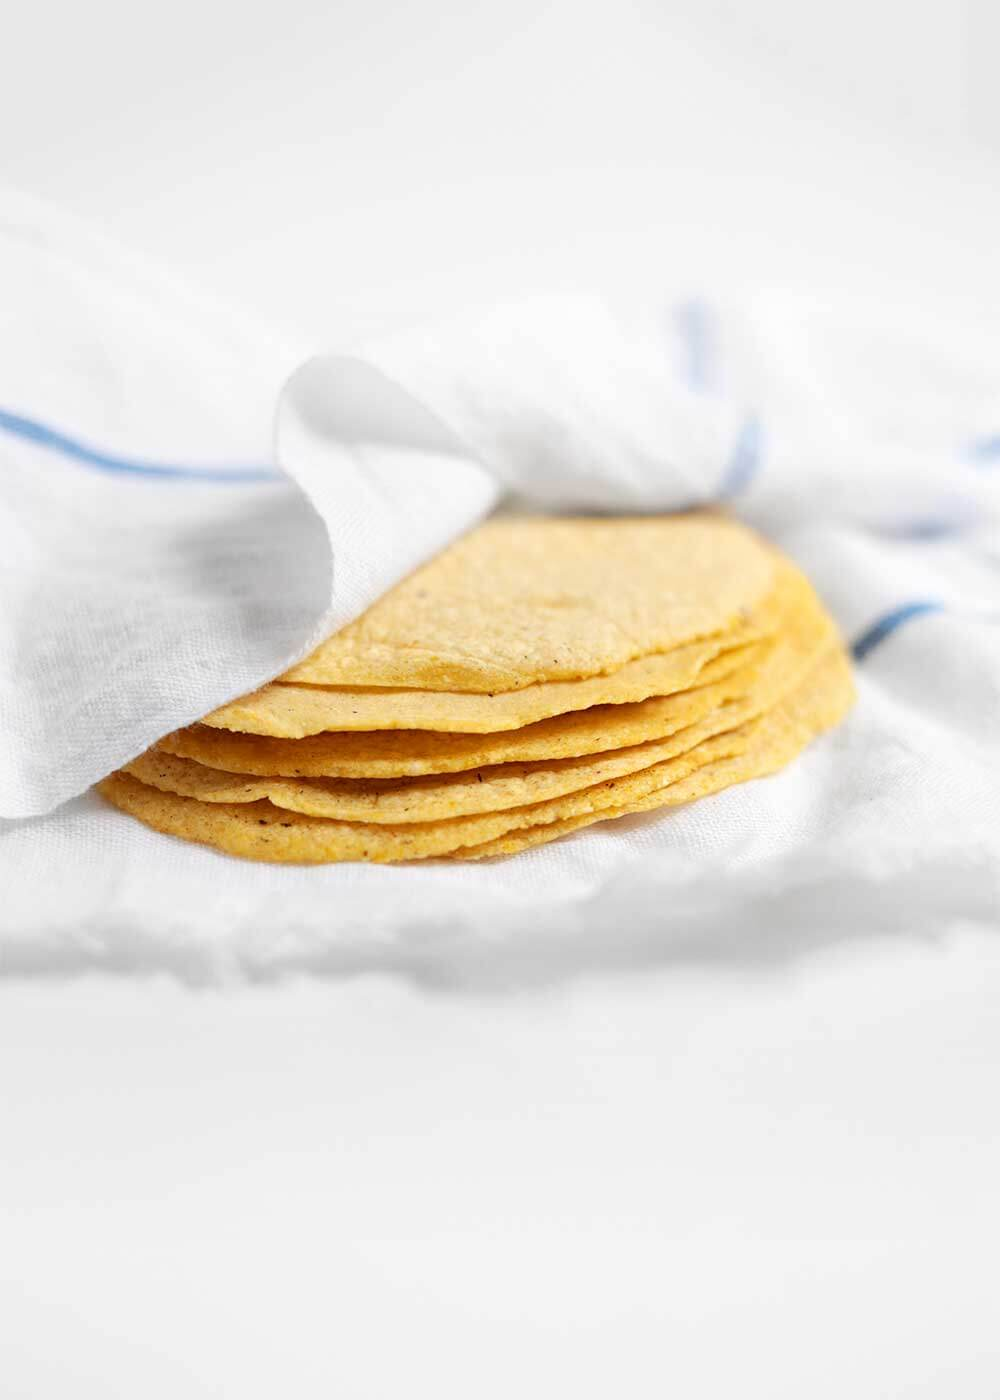 Homemade Corn Tortillas from the faux martha